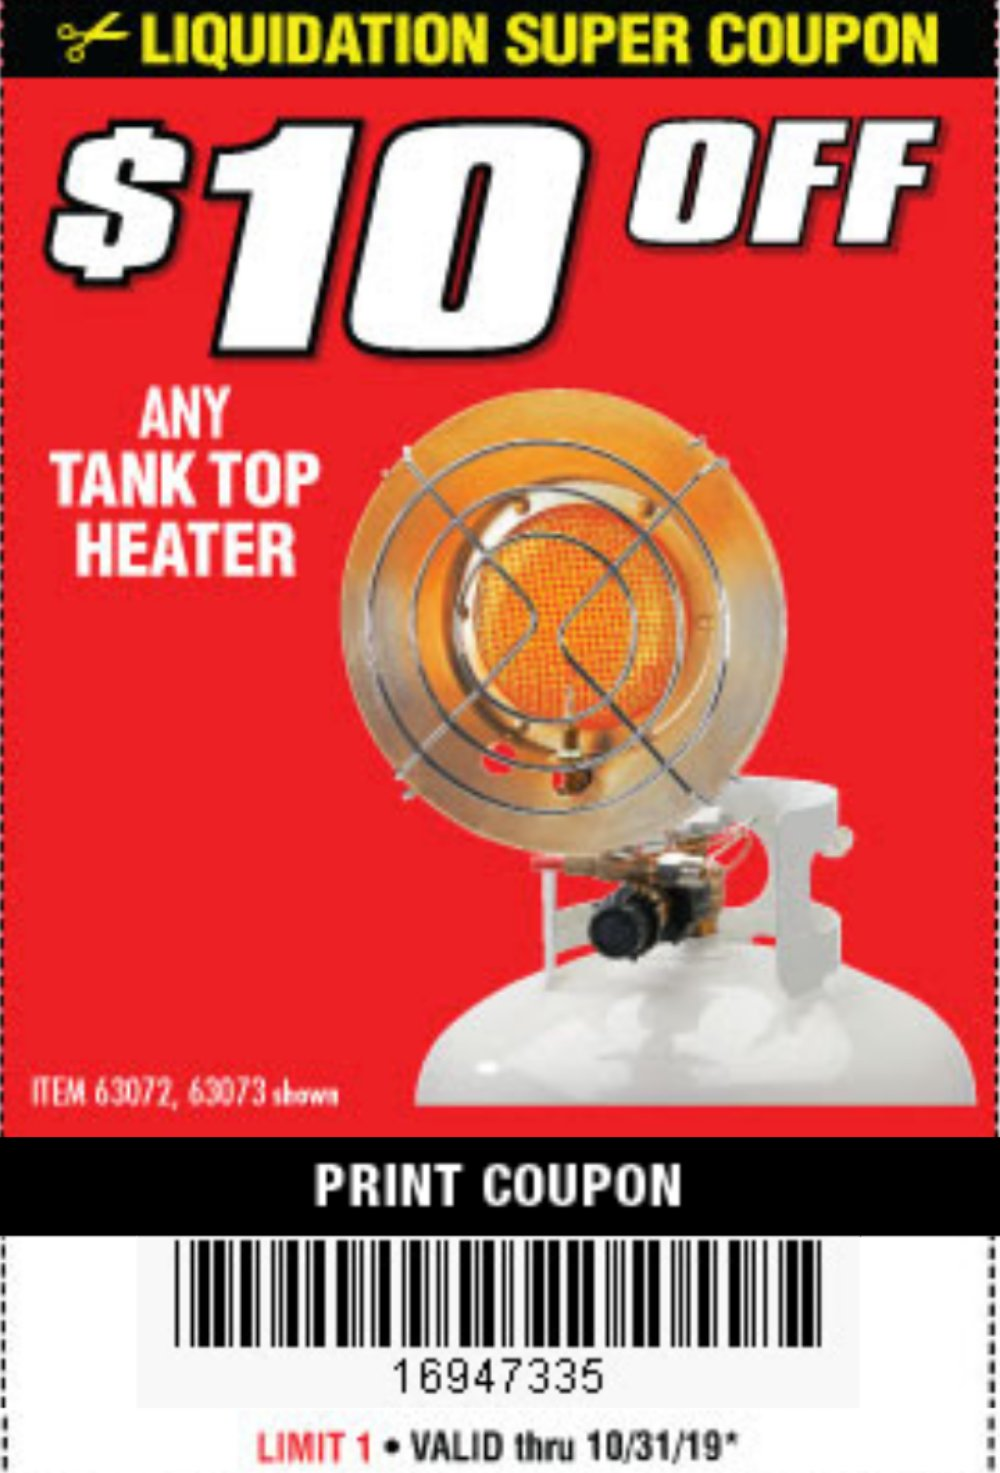 Harbor Freight Coupon, HF Coupons - $10 off propane tank heaters